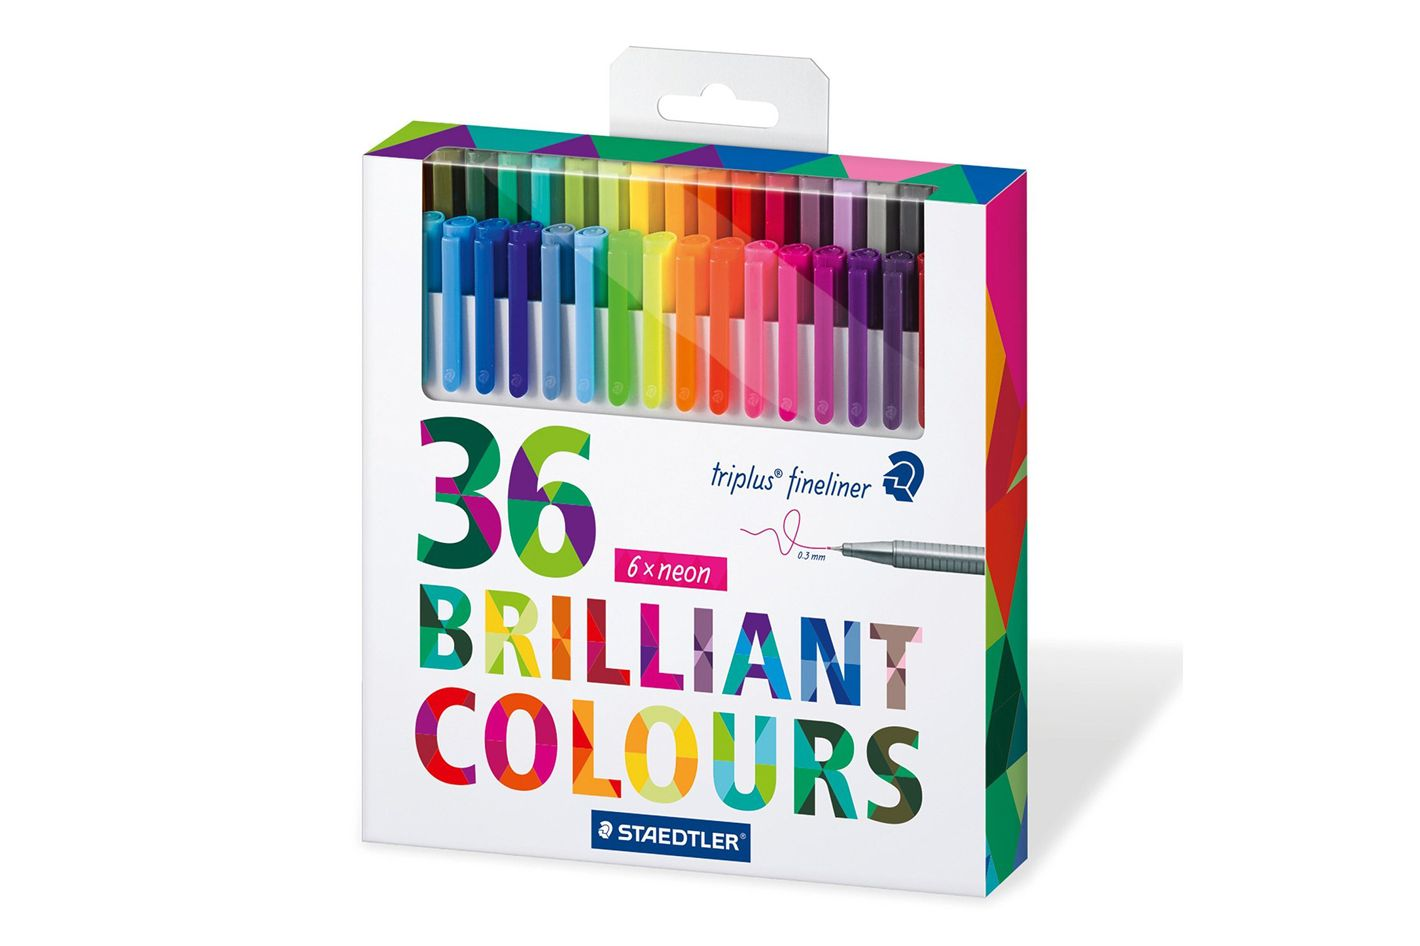 staedtler coloring pens - Best Christmas Gifts Under 50